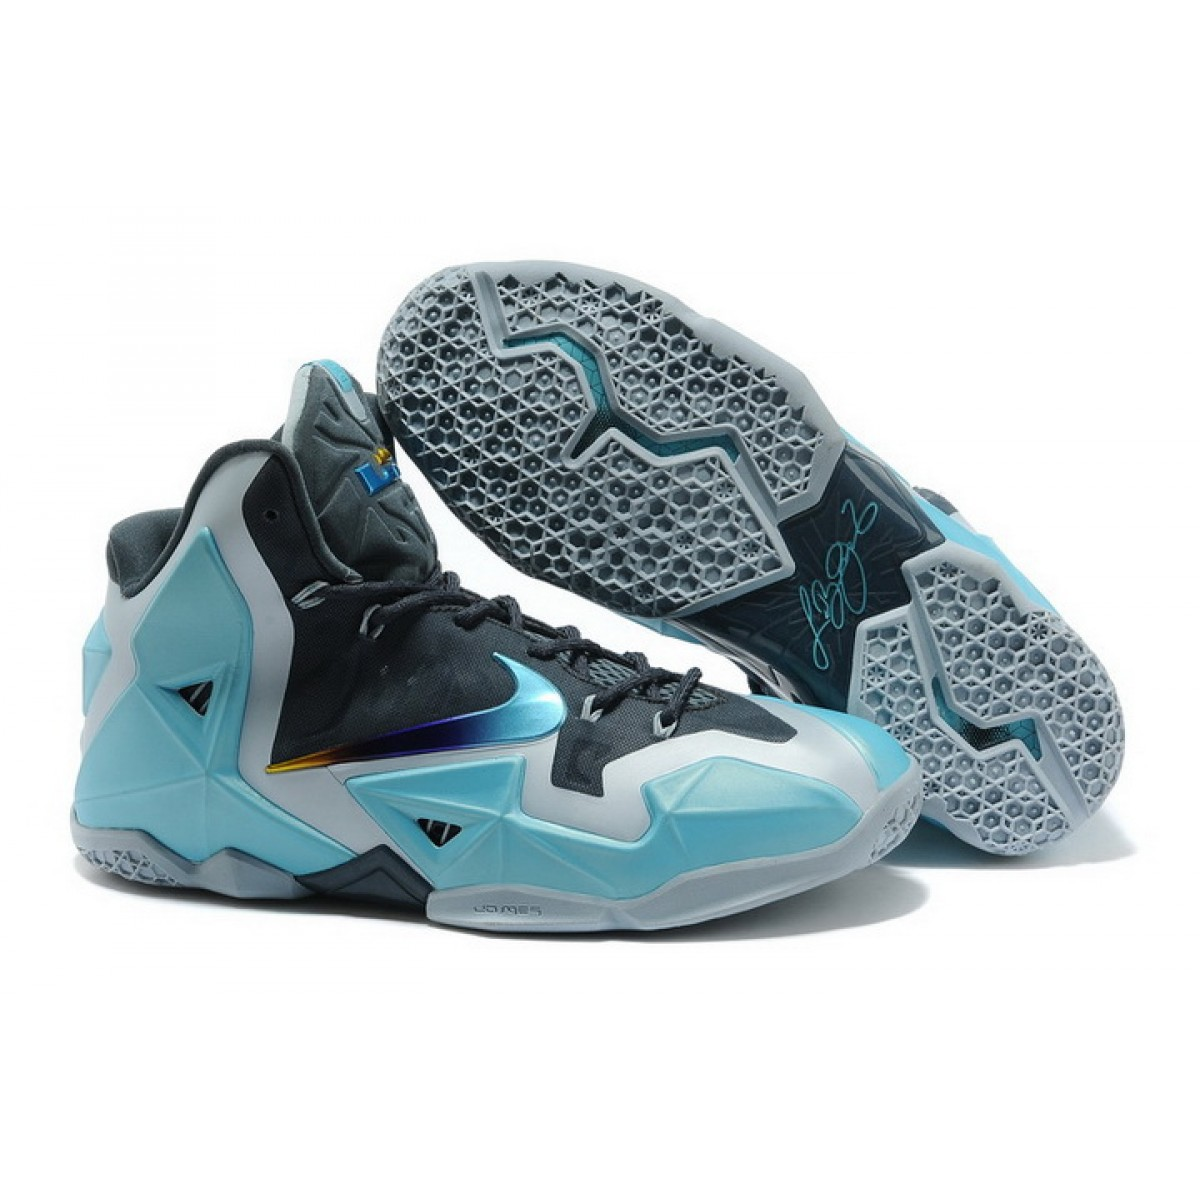 Nike Lebron 11 Grey Black Blue China Warriors Shoes